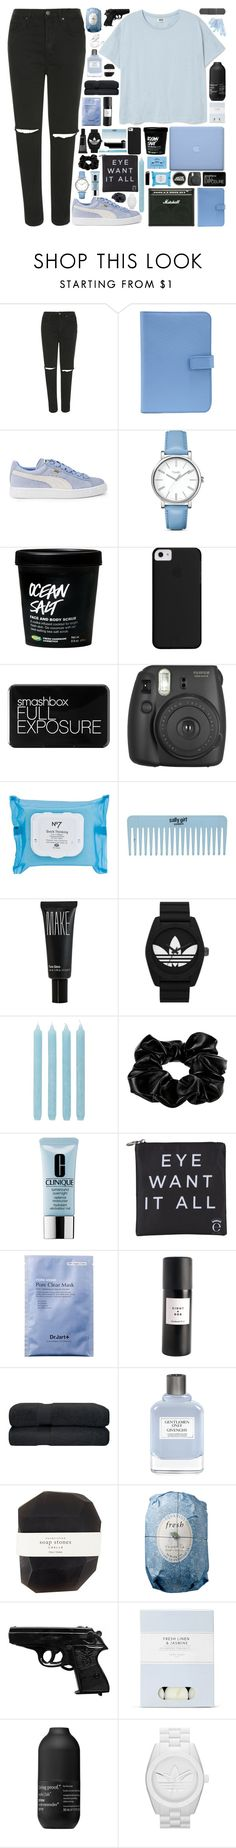 """""""A YOUNG MAN"""" by doubting ❤ liked on Polyvore featuring Topshop, Smythson, Puma, Timex, Smashbox, CASSETTE, Boots No7, Make, adidas Originals and Pier 1 Imports"""